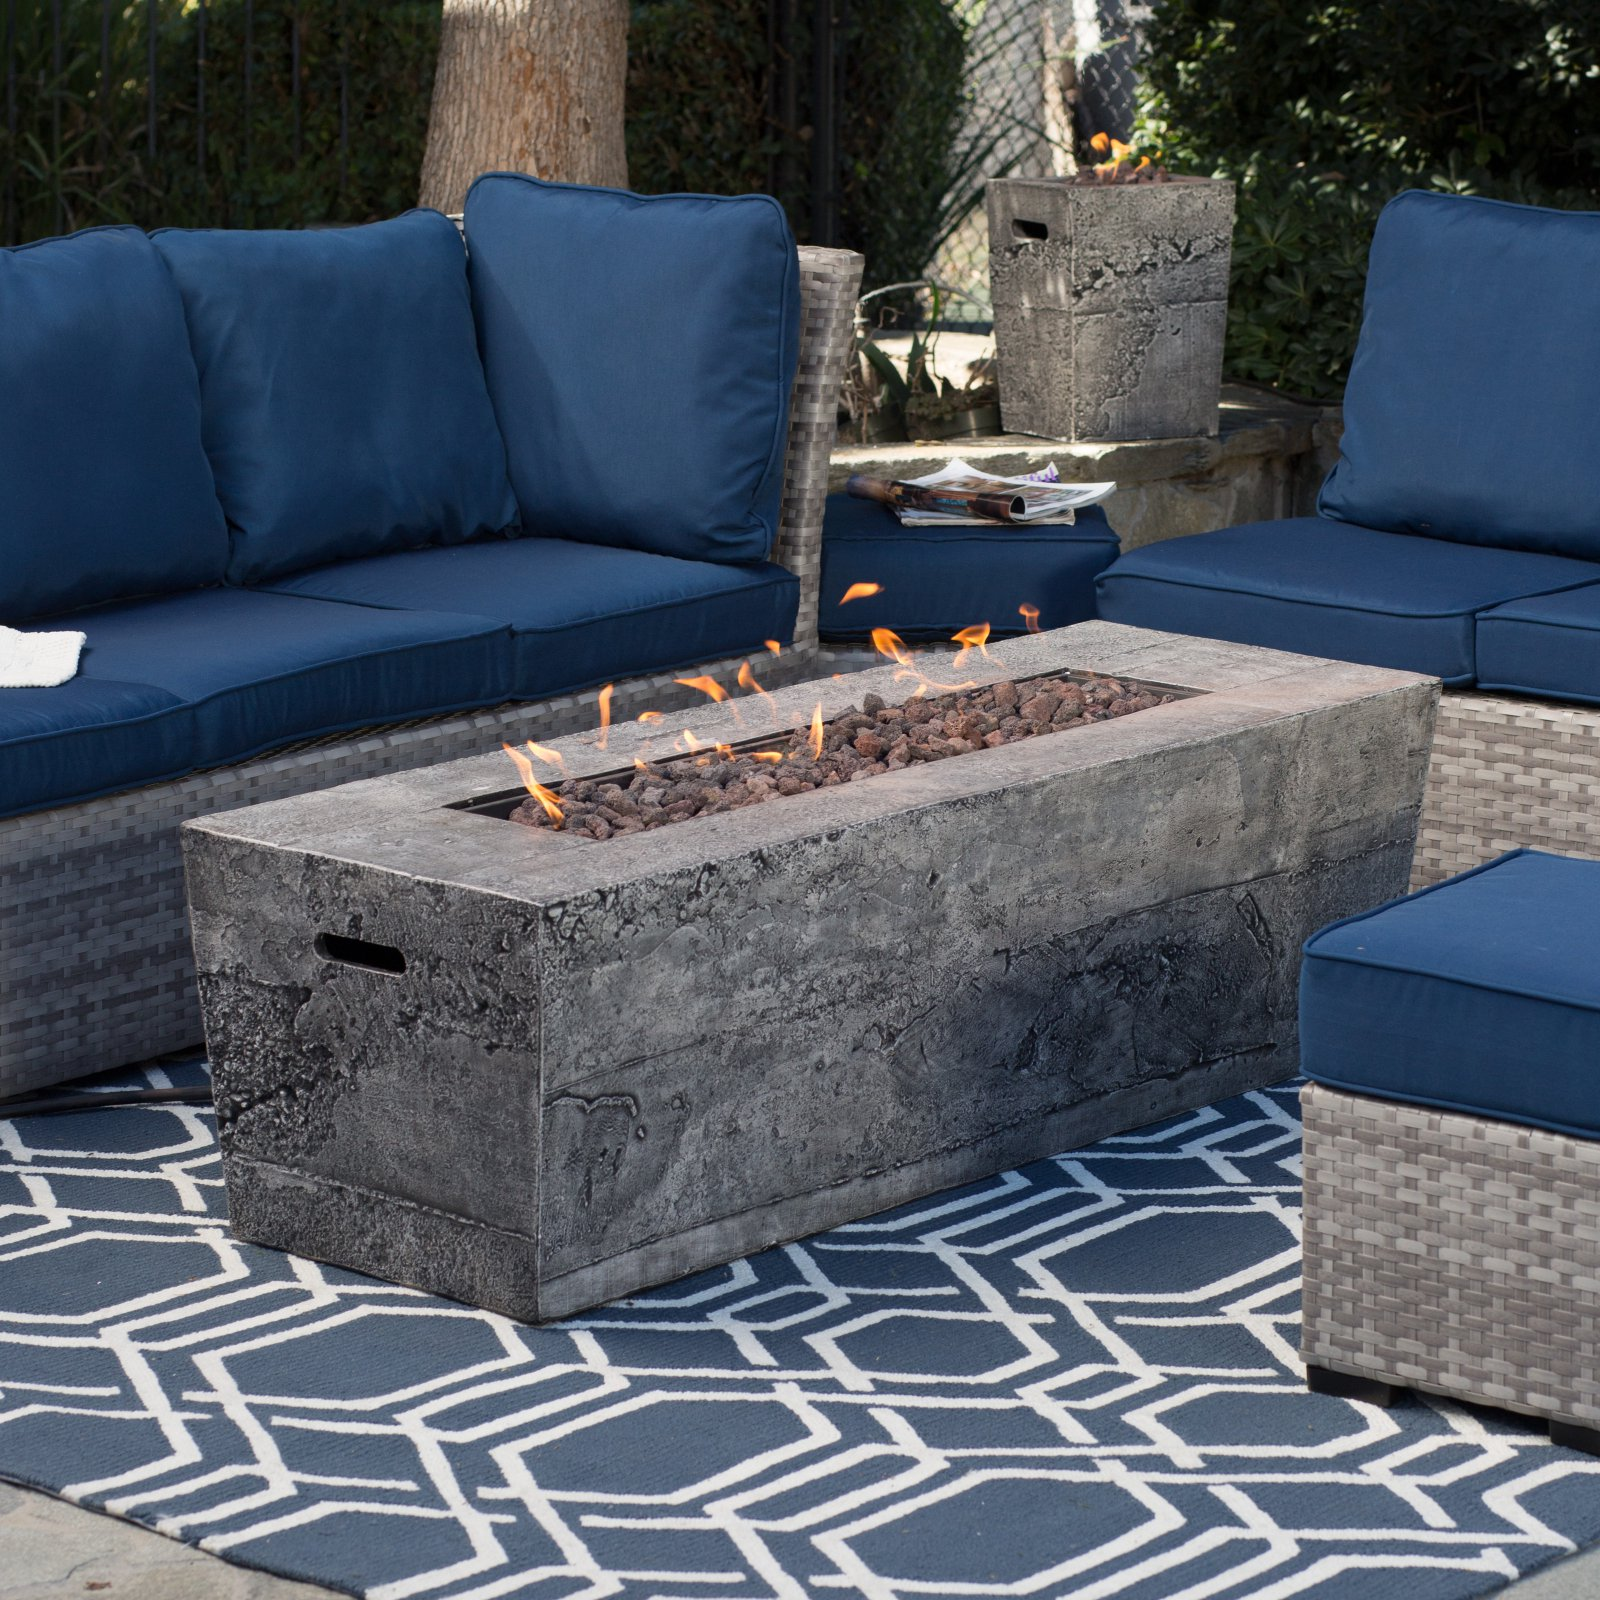 A long fire pit table that provides a perfect focal point for your patio furniture the red ember glacier stone 60 in gas fire pit table is powerful and